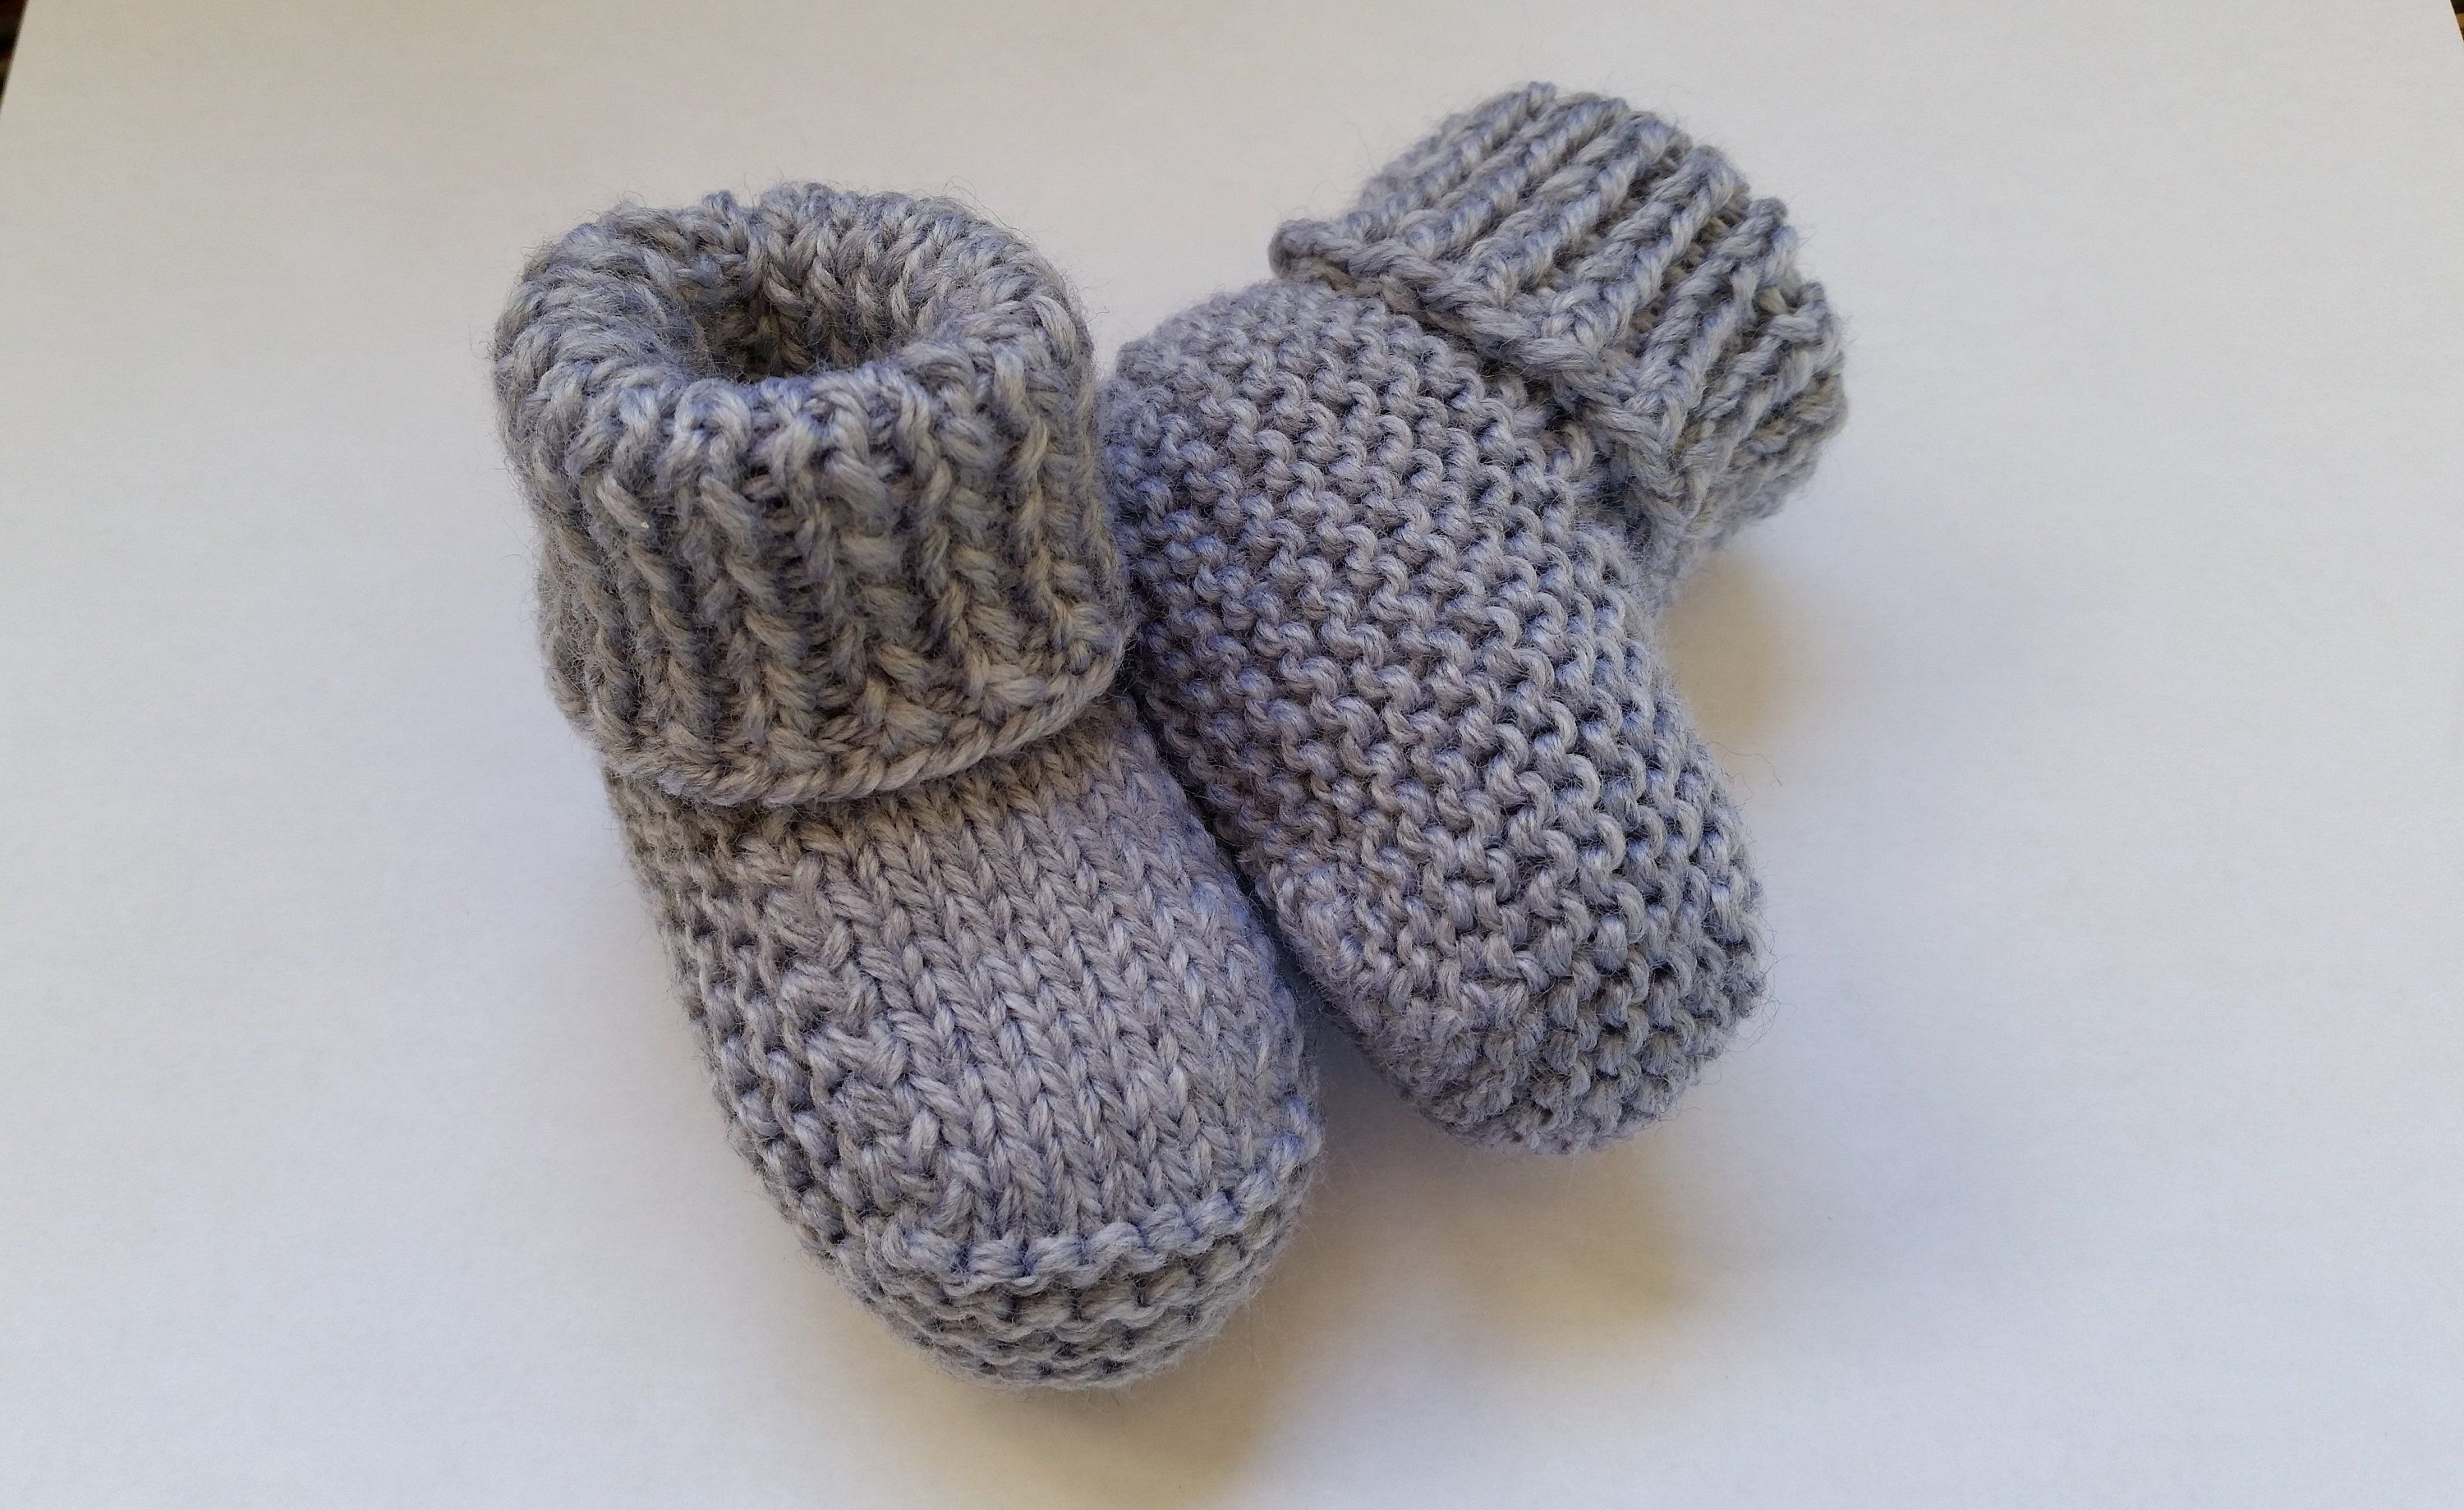 bf97a8f8532 Baby Booties, Knitted Baby Shoes, Baby Boy Booties, Newborn Booties ...